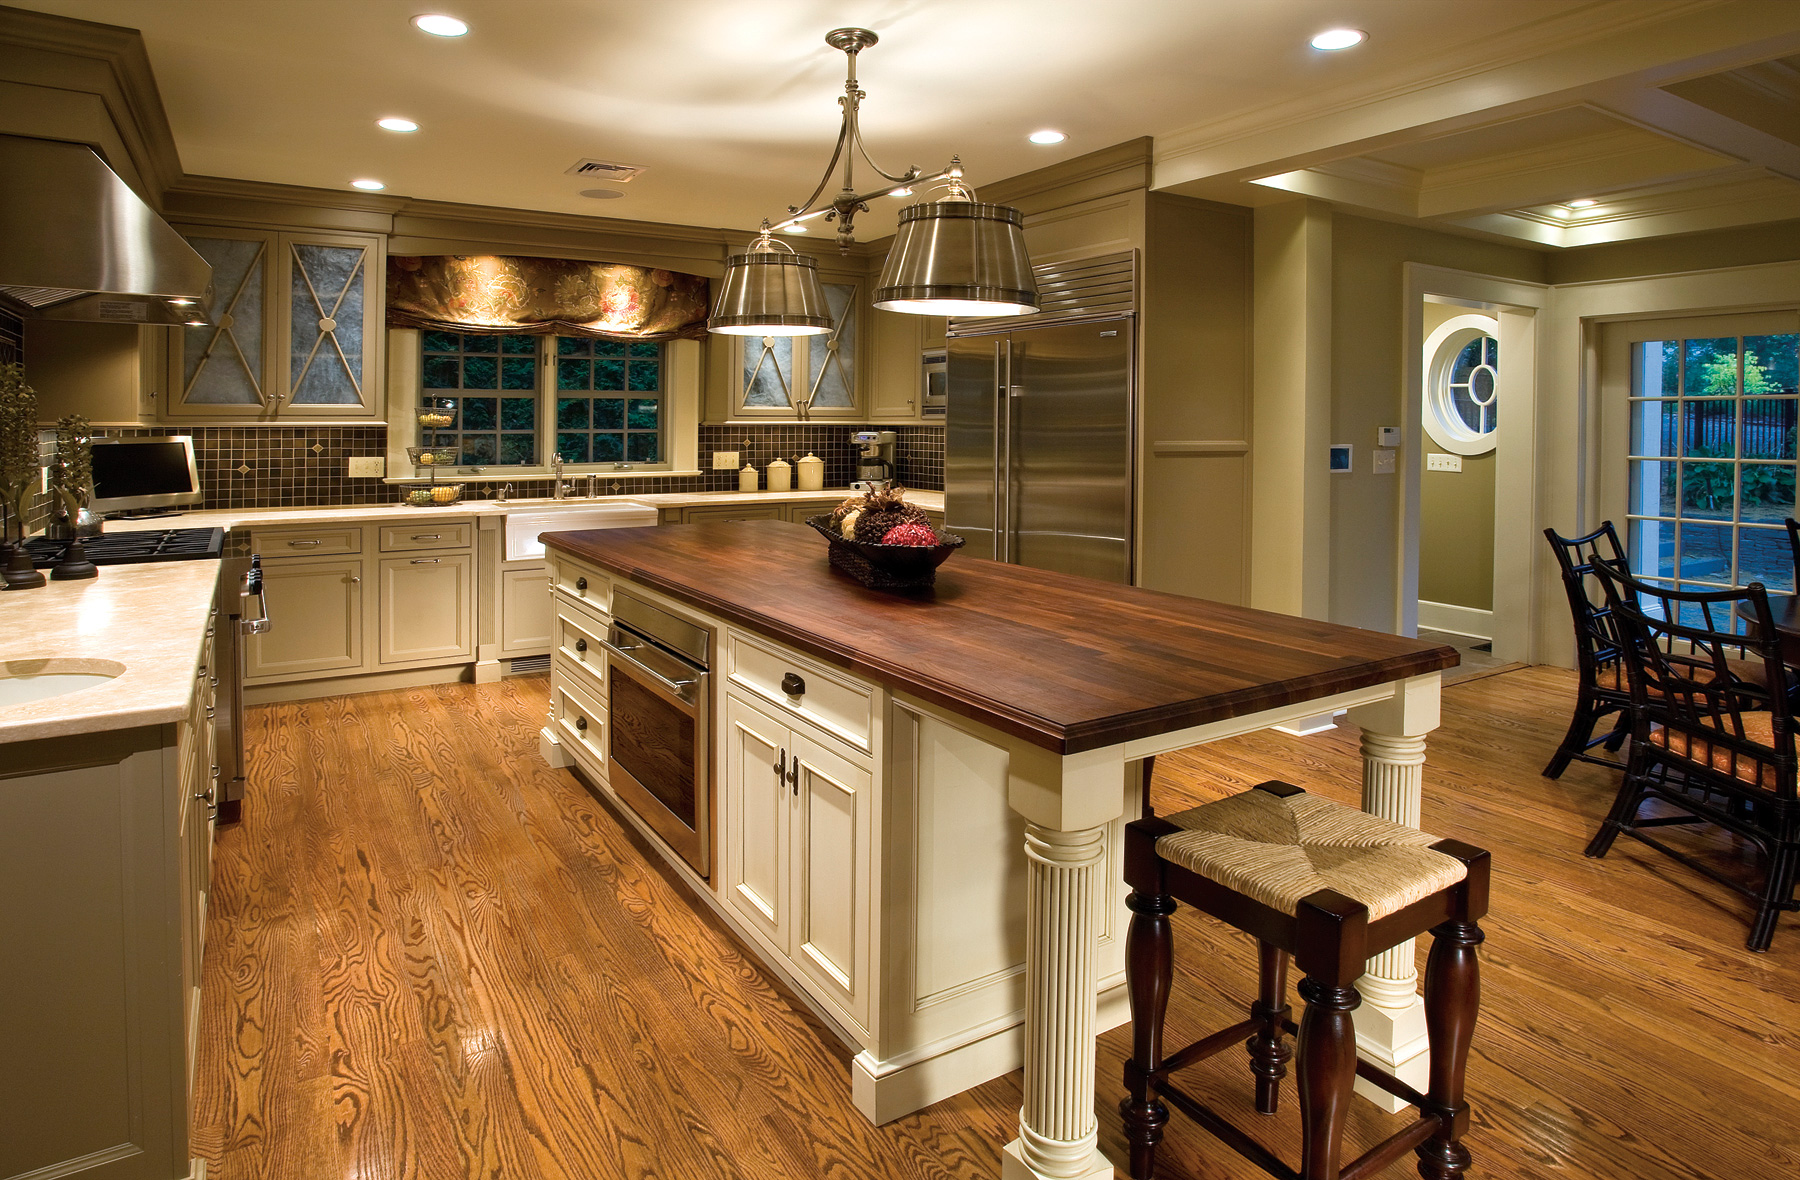 Great White Kitchen Island with Wood Top 1800 x 1180 · 912 kB · jpeg